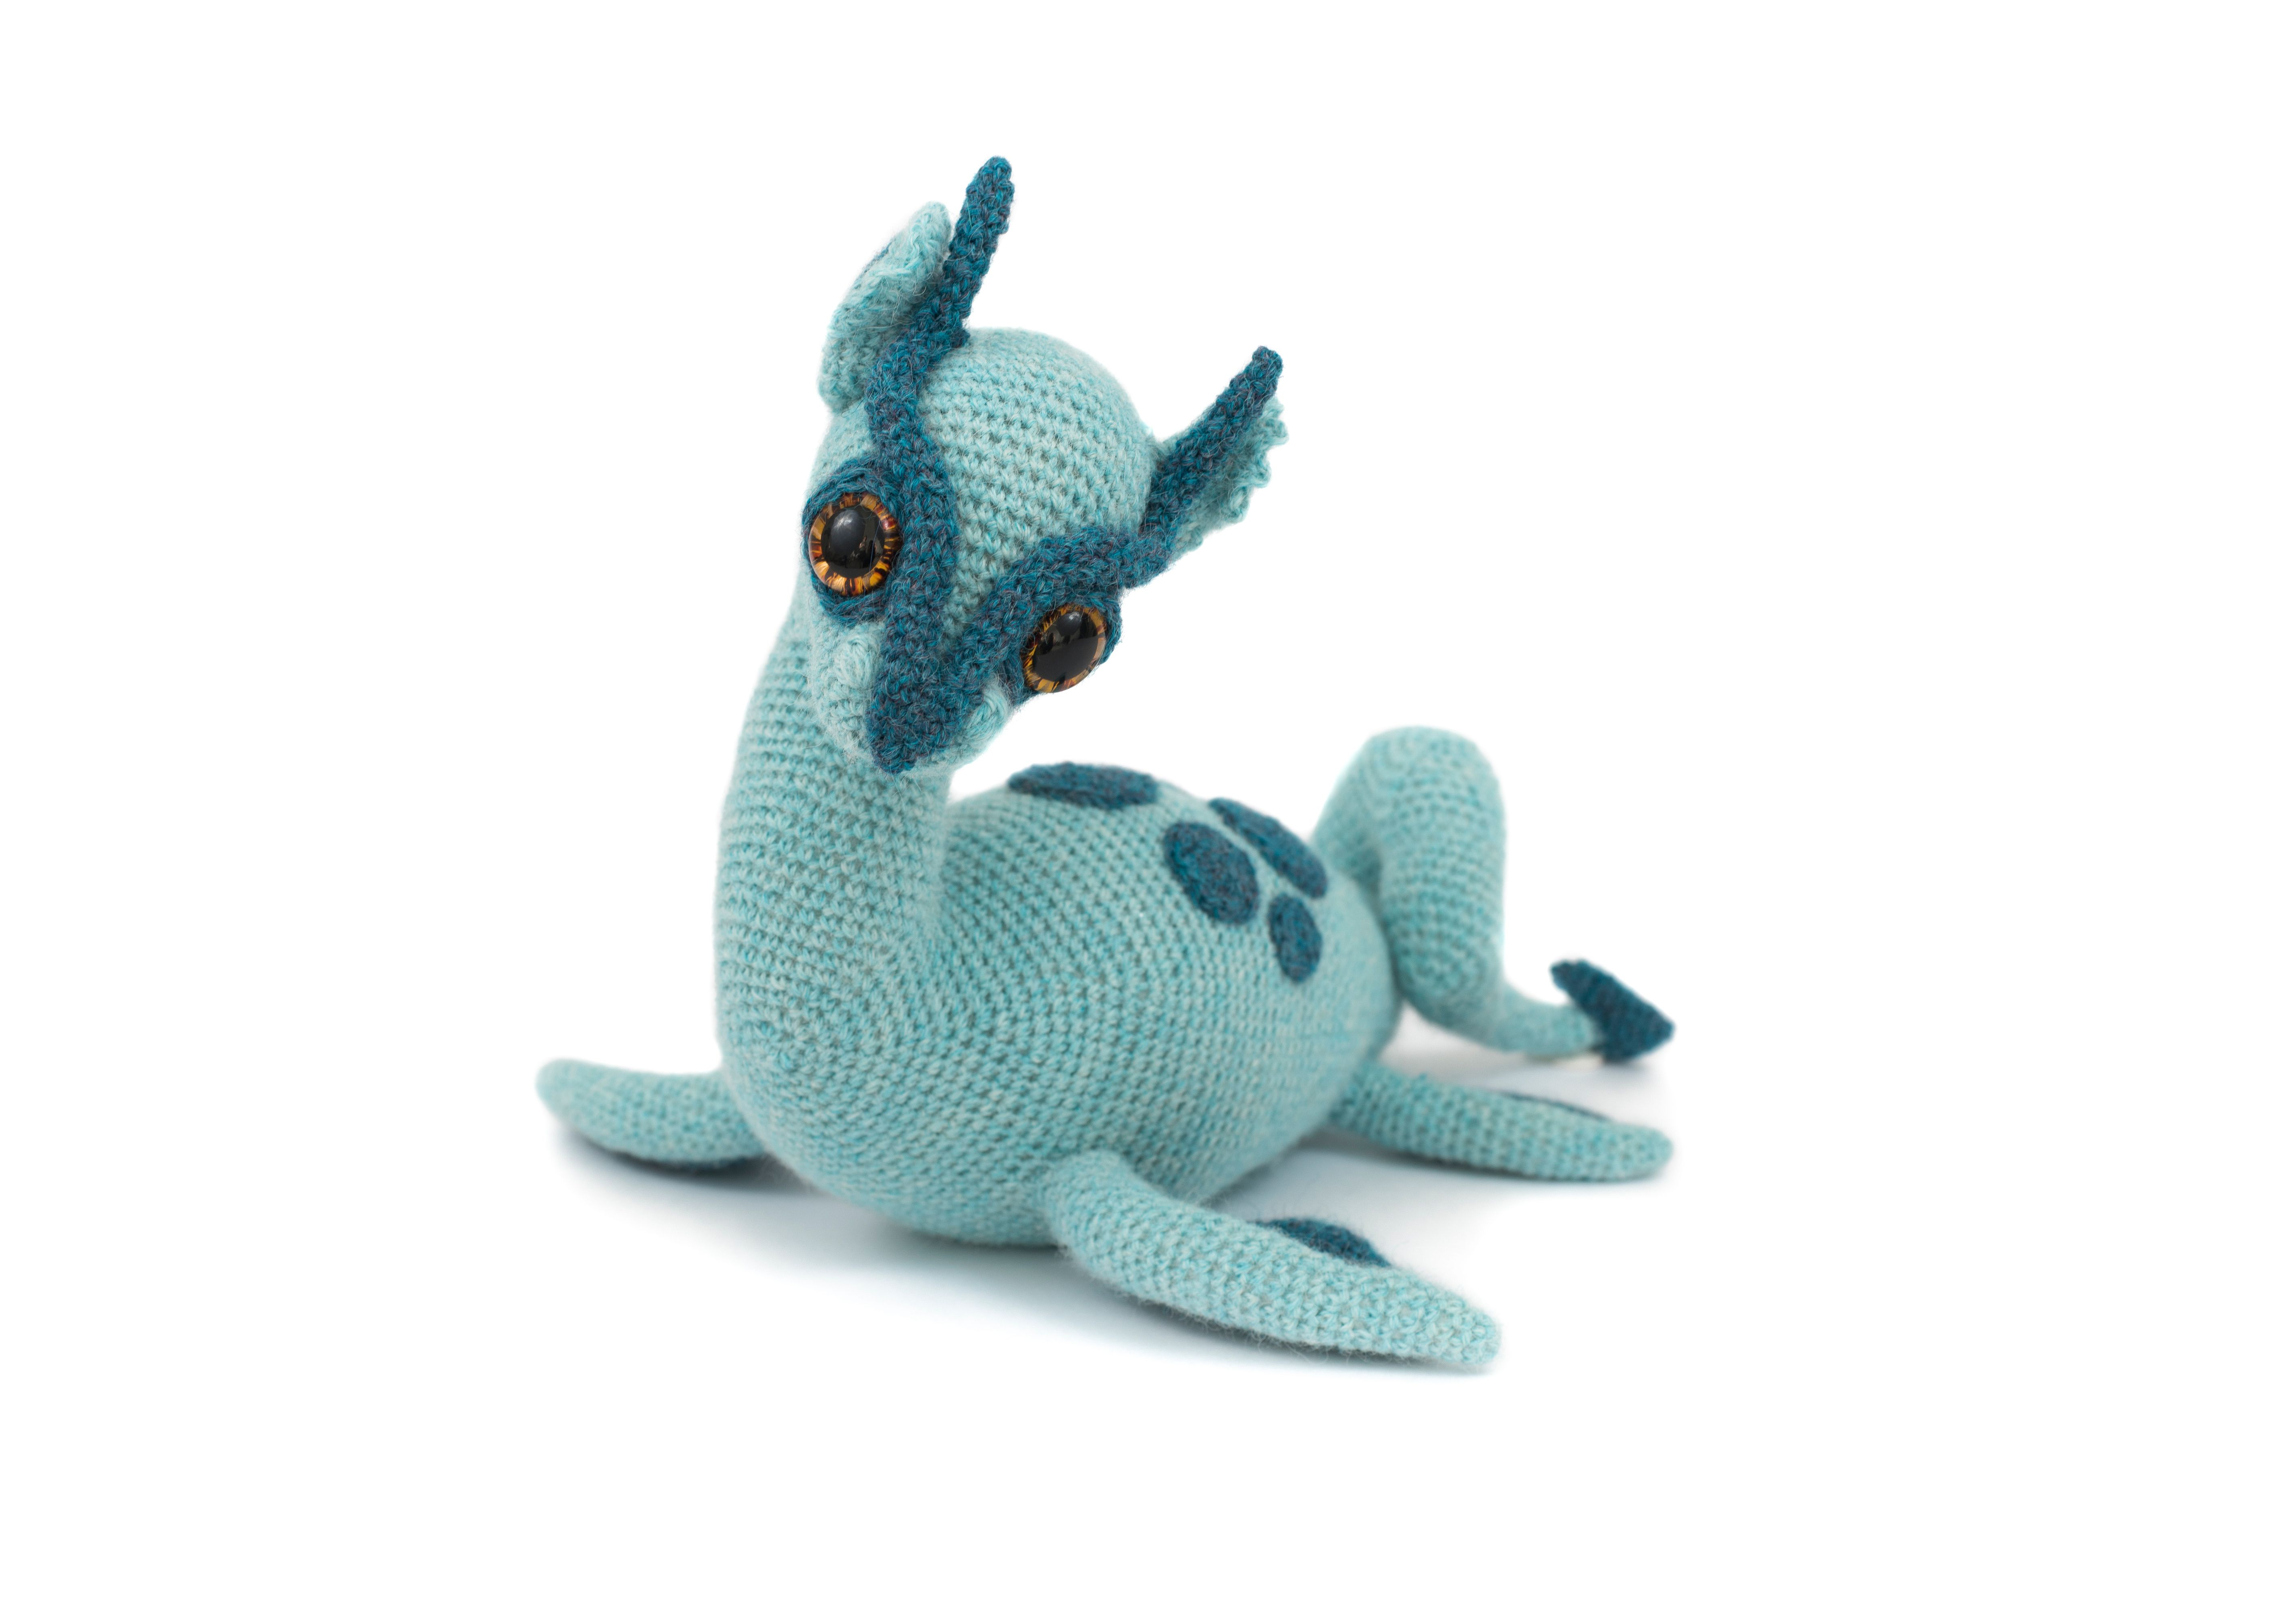 Nessie the Loch Ness Monster by Patchwork Moose - crochet pattern in ...